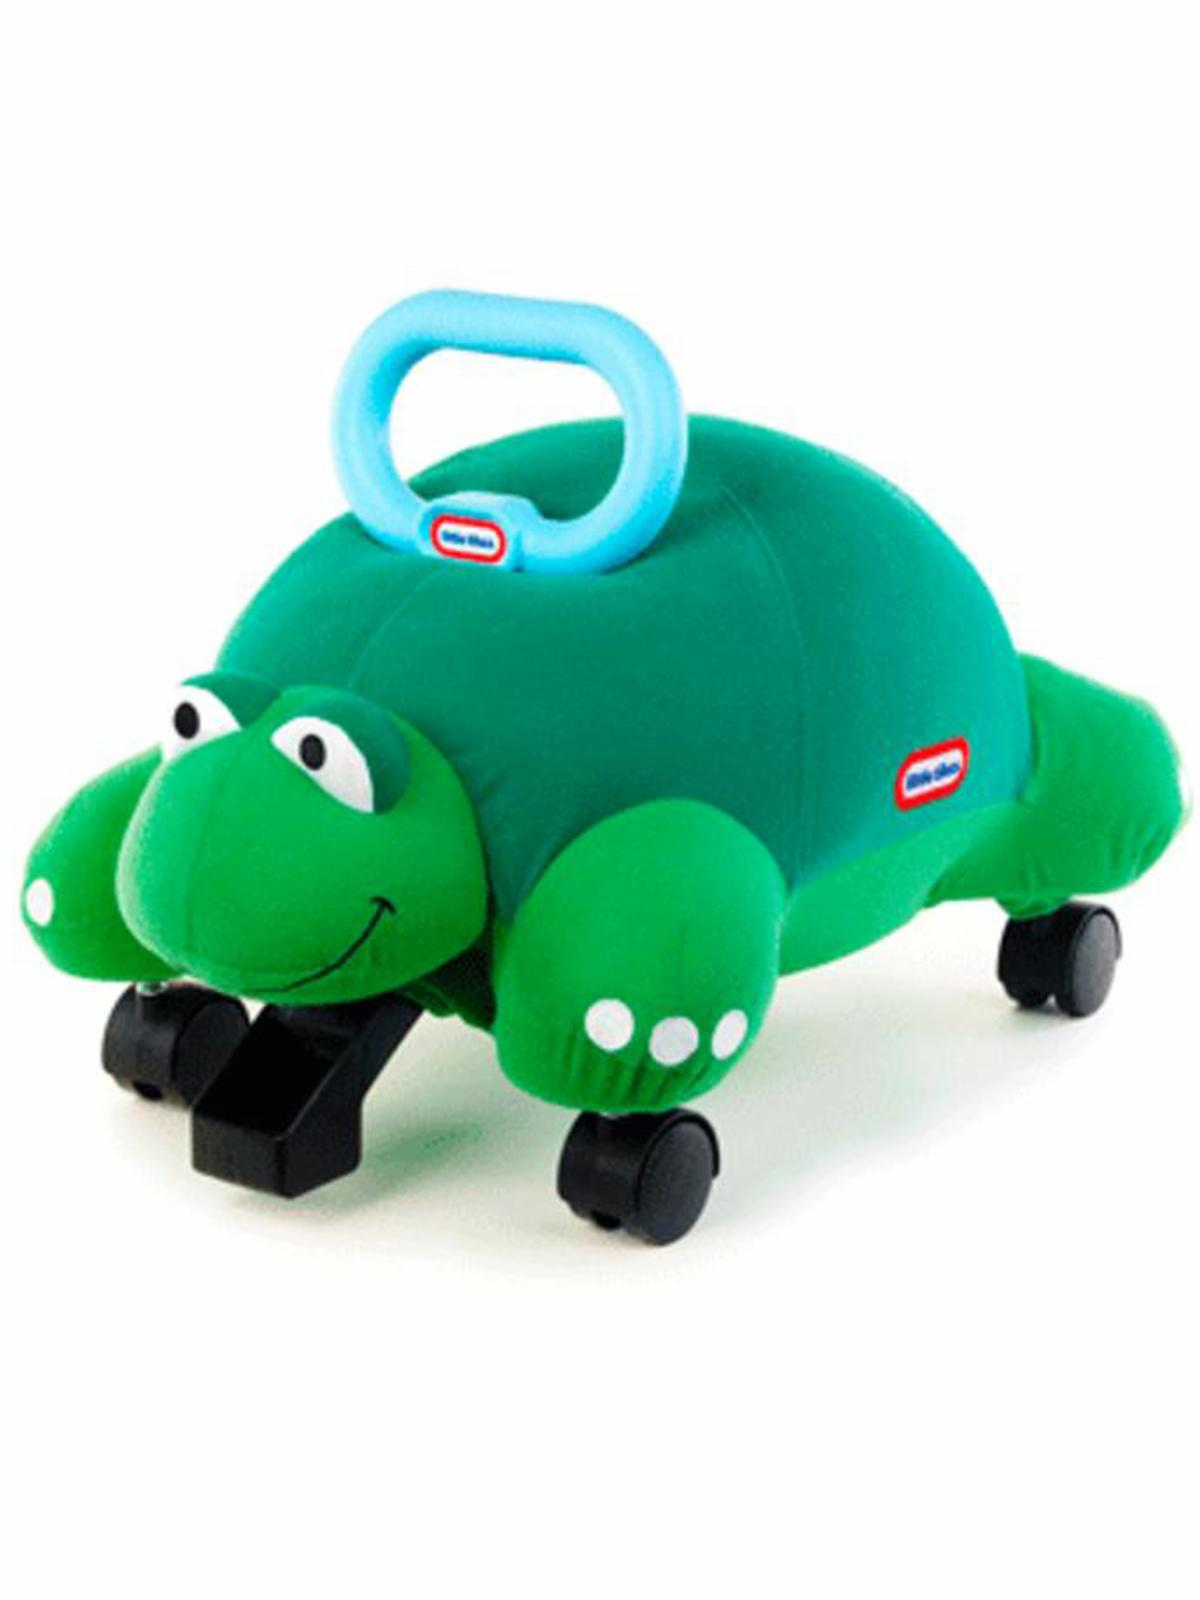 Little Tikes Pillow Racer Available With Supplier Now